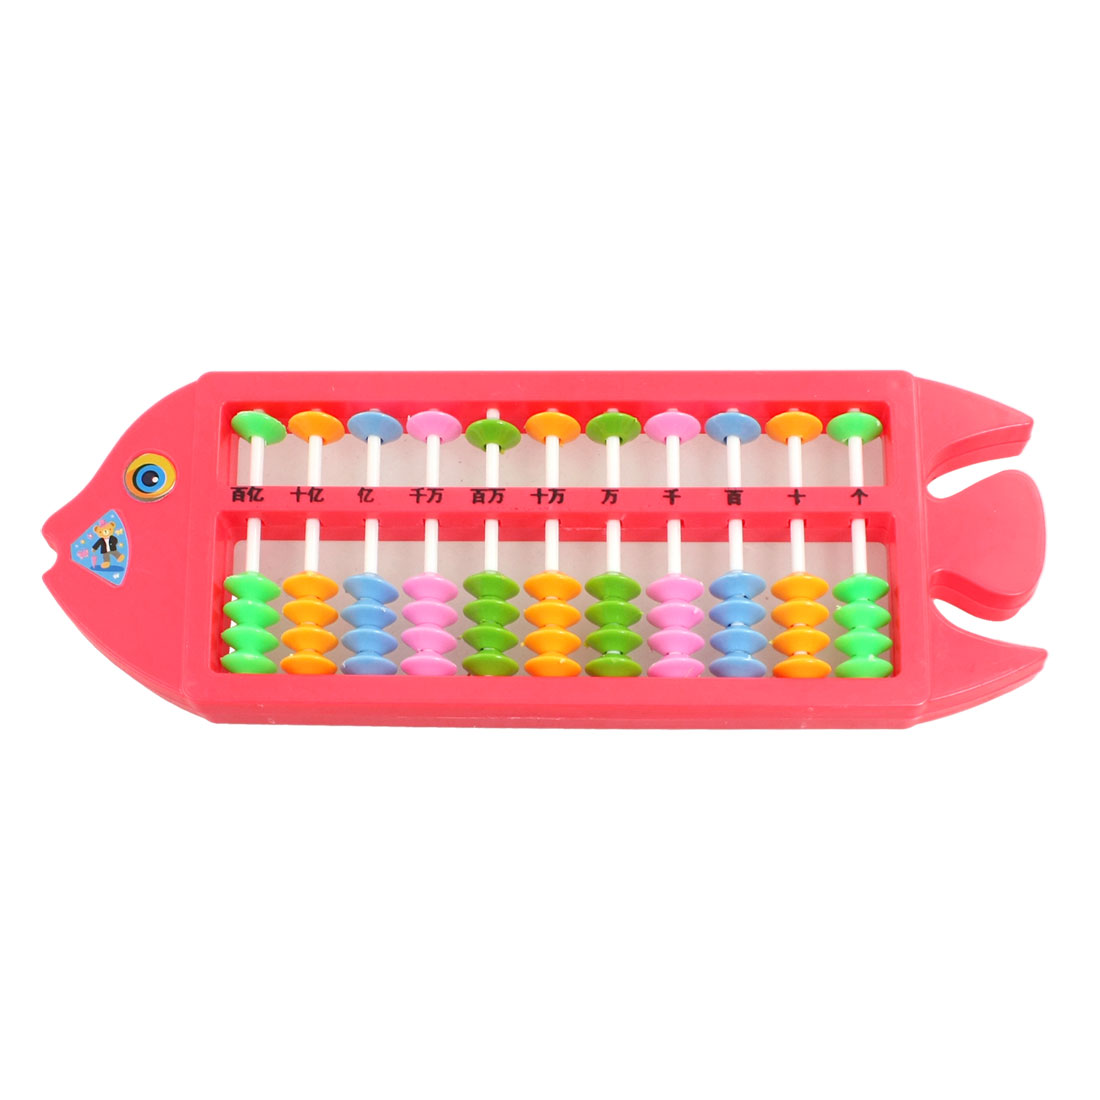 Children Red Plastic Fish Shaped Frame Colorful Beads Educational Japanese Abacus Toy